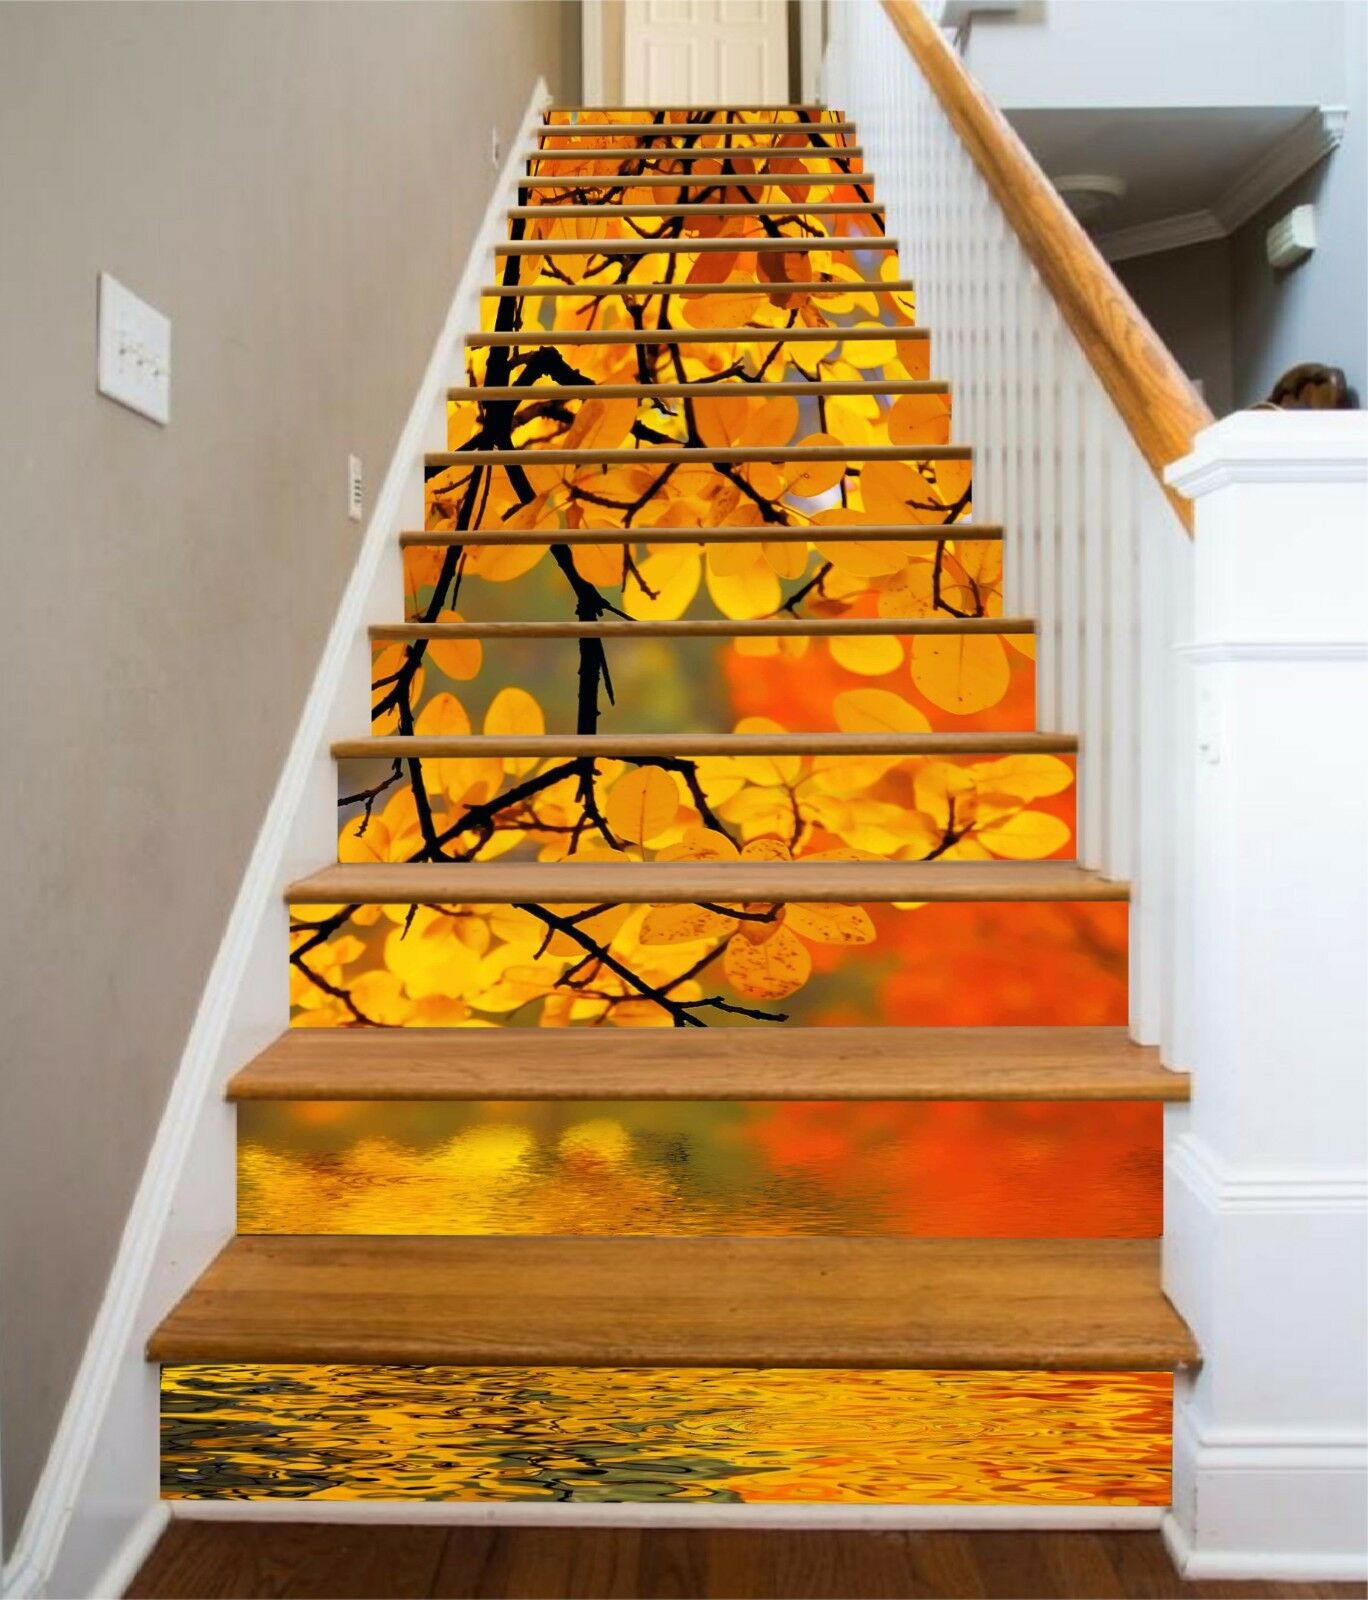 3D jaune leaves Stair Risers Decoration Photo Mural Vinyl Decal Wallpaper AU